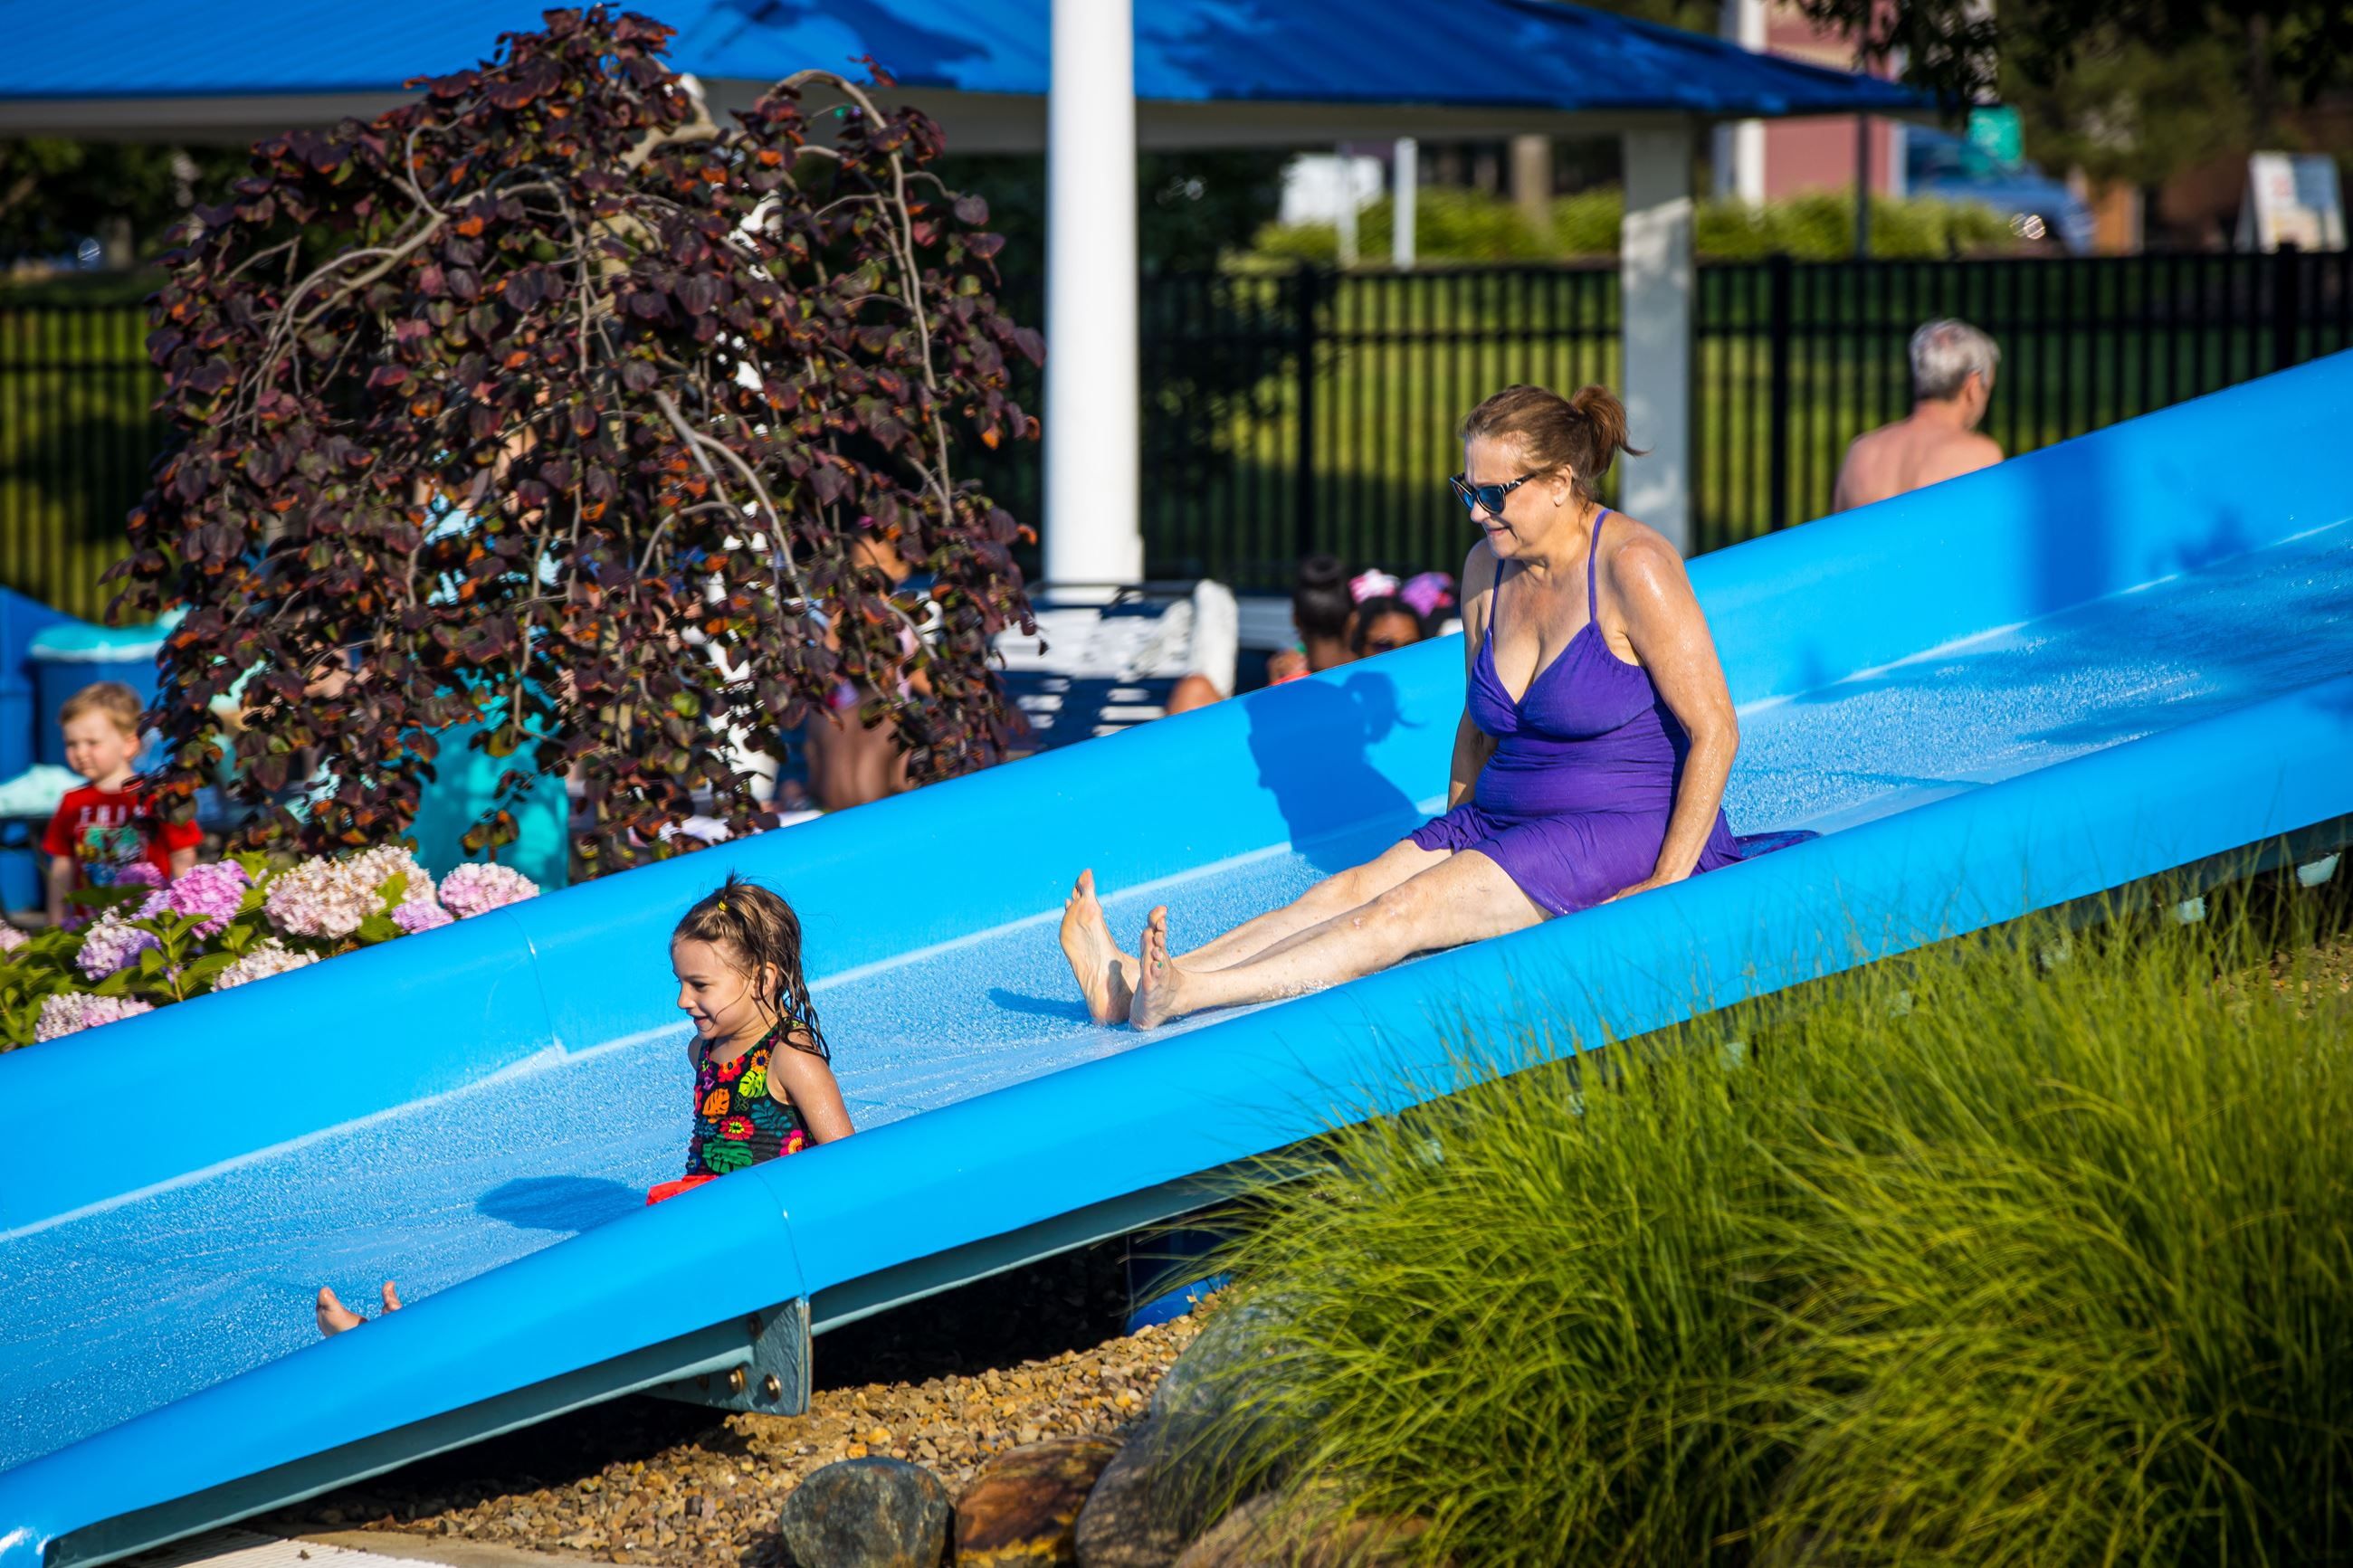 A child and woman use the slide at the Beachwood Family Aquatic Center